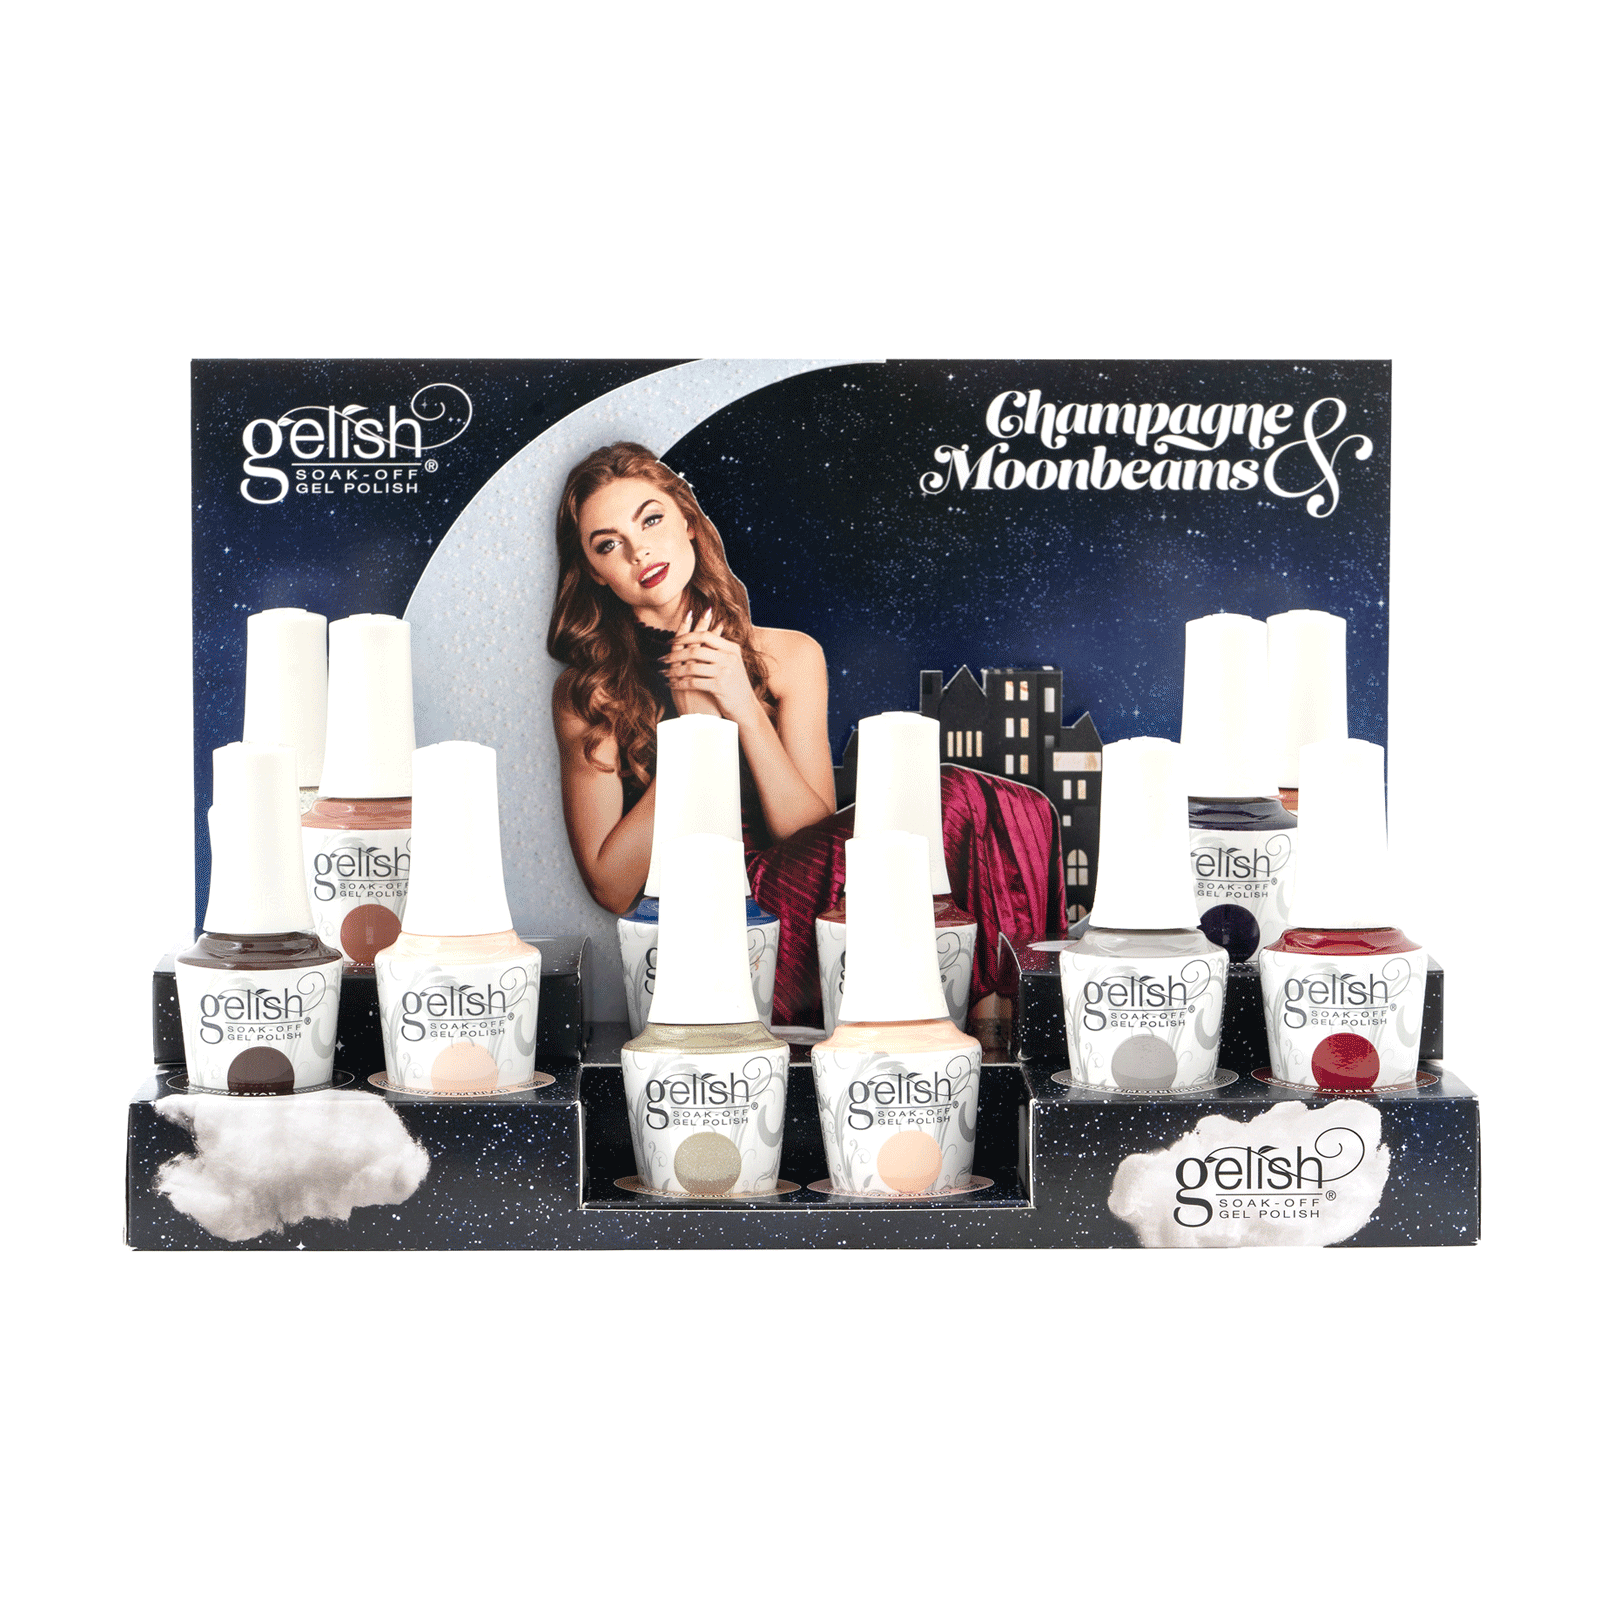 Gelish Champagne & Moonbeams - 12 Piece Display